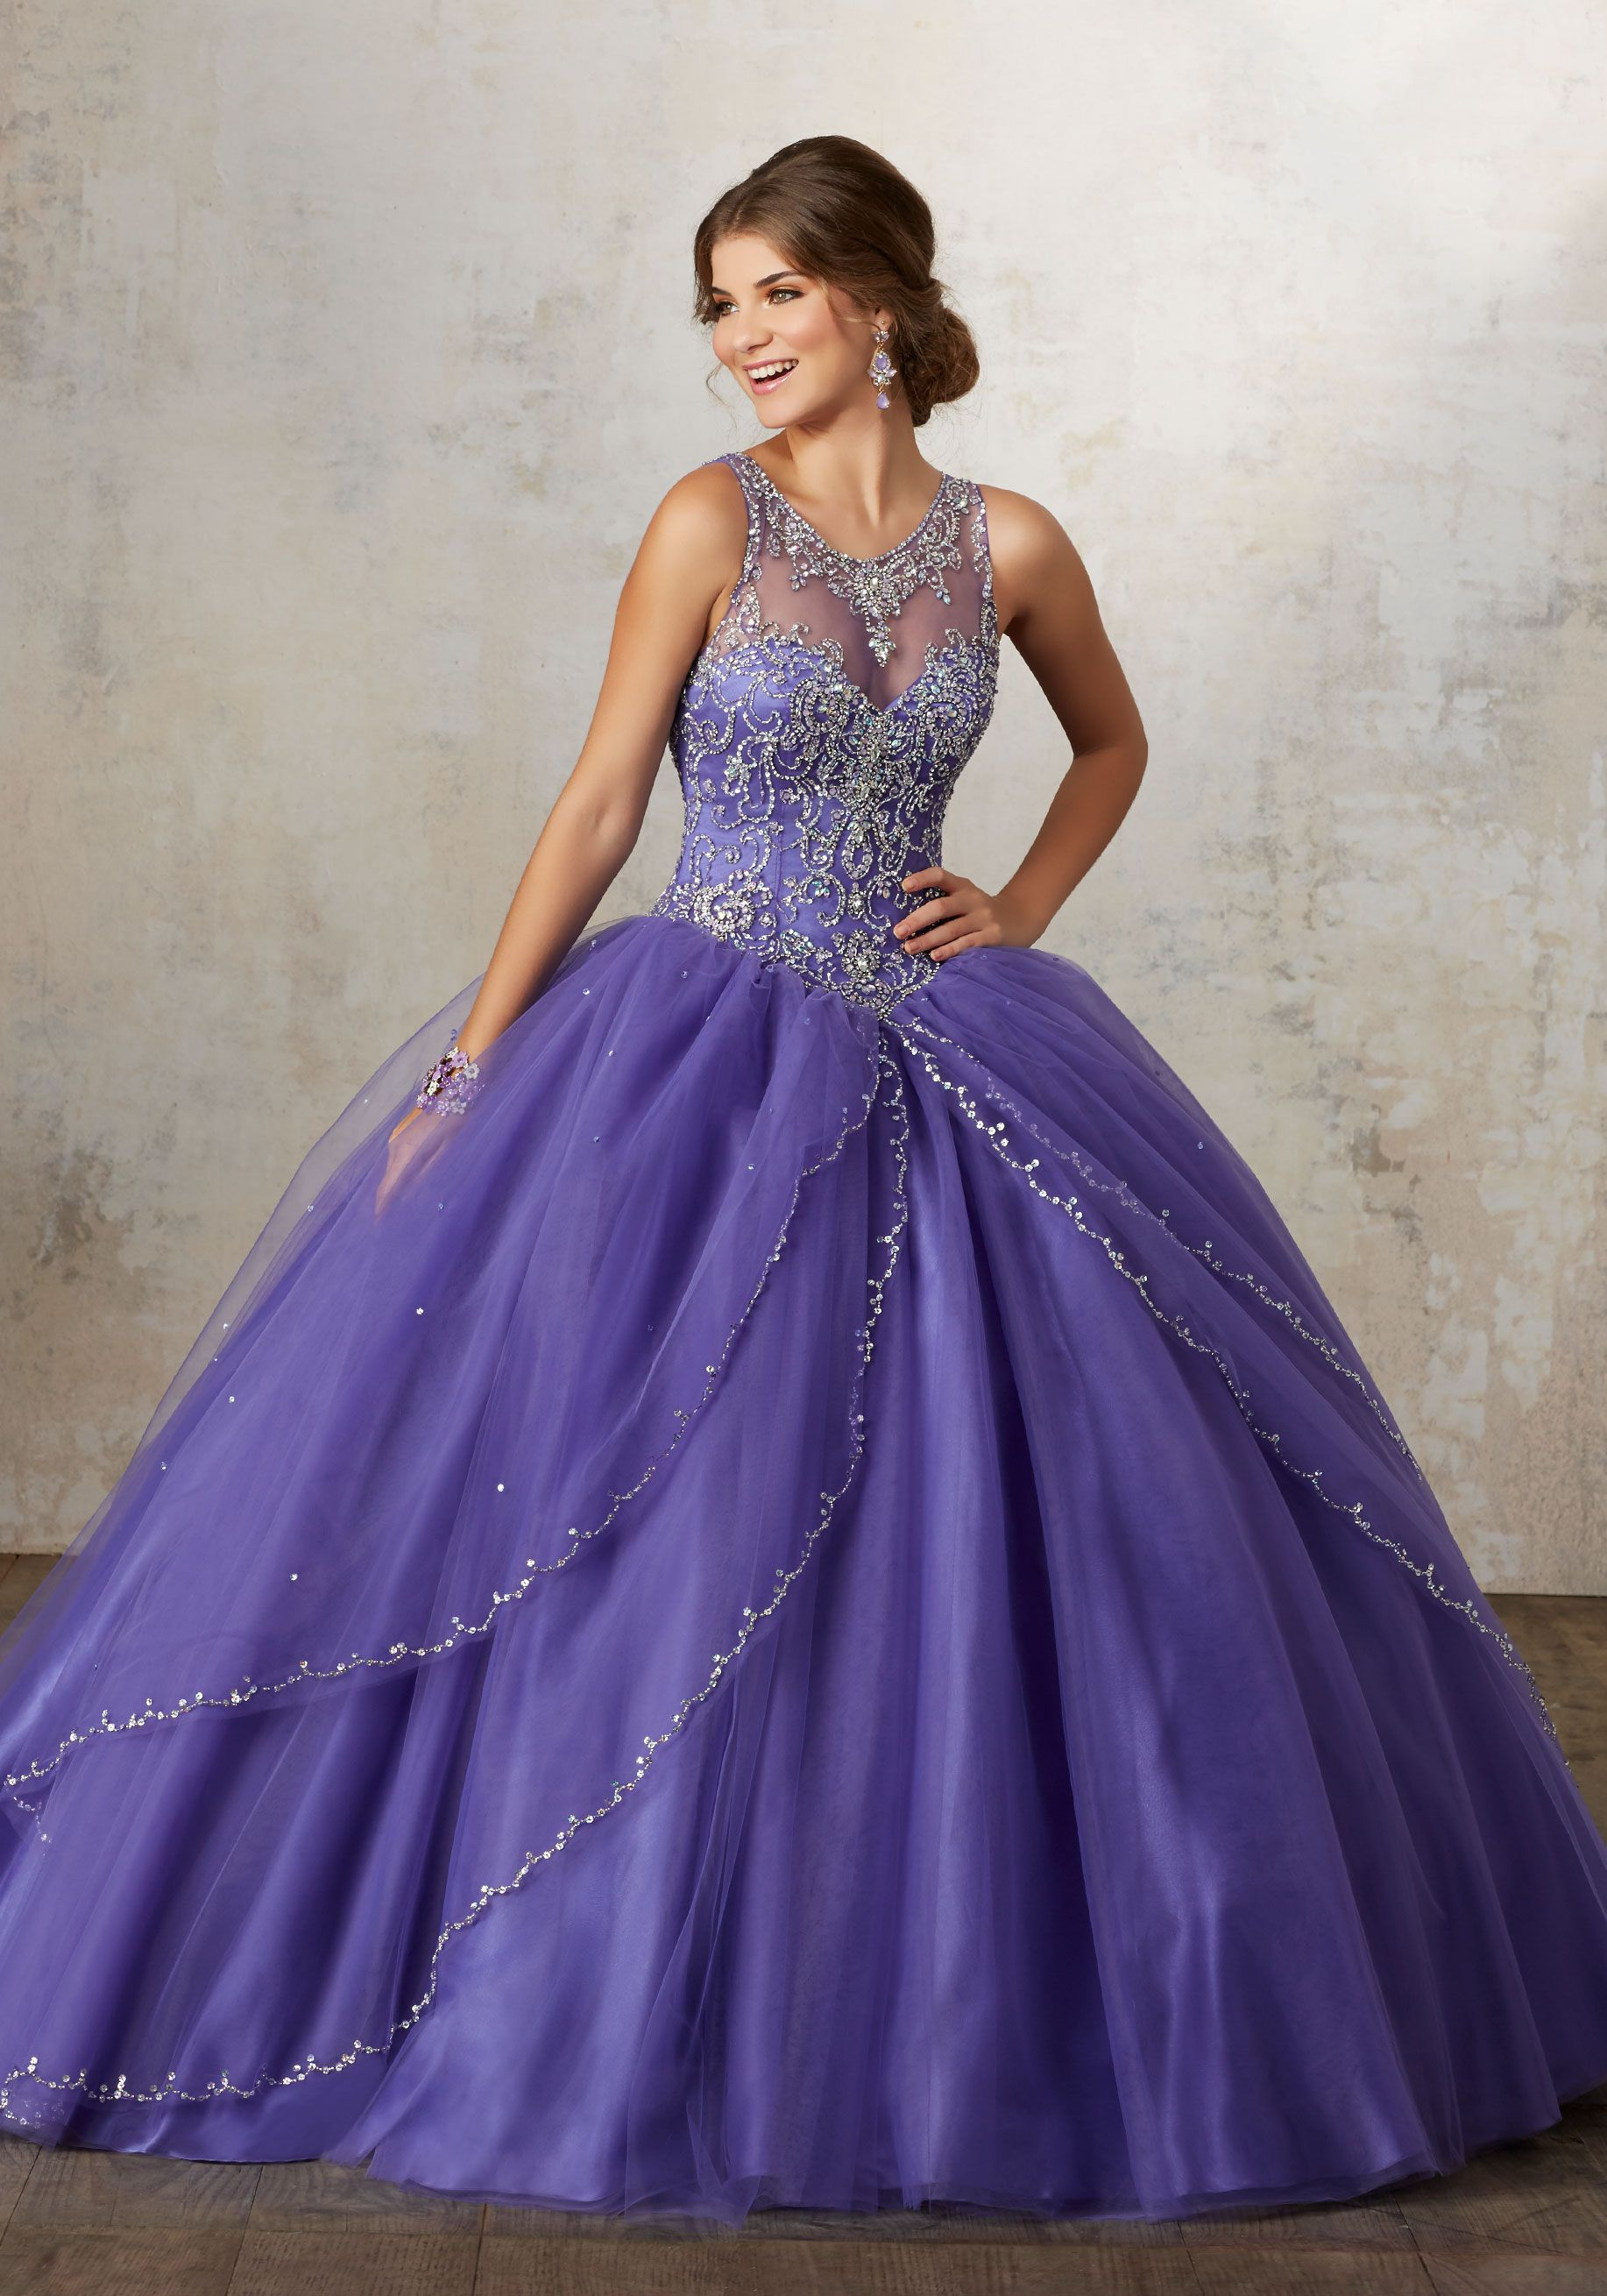 Accented with Jeweled Beading, Tulle Quinceañera Ballgown Features ...